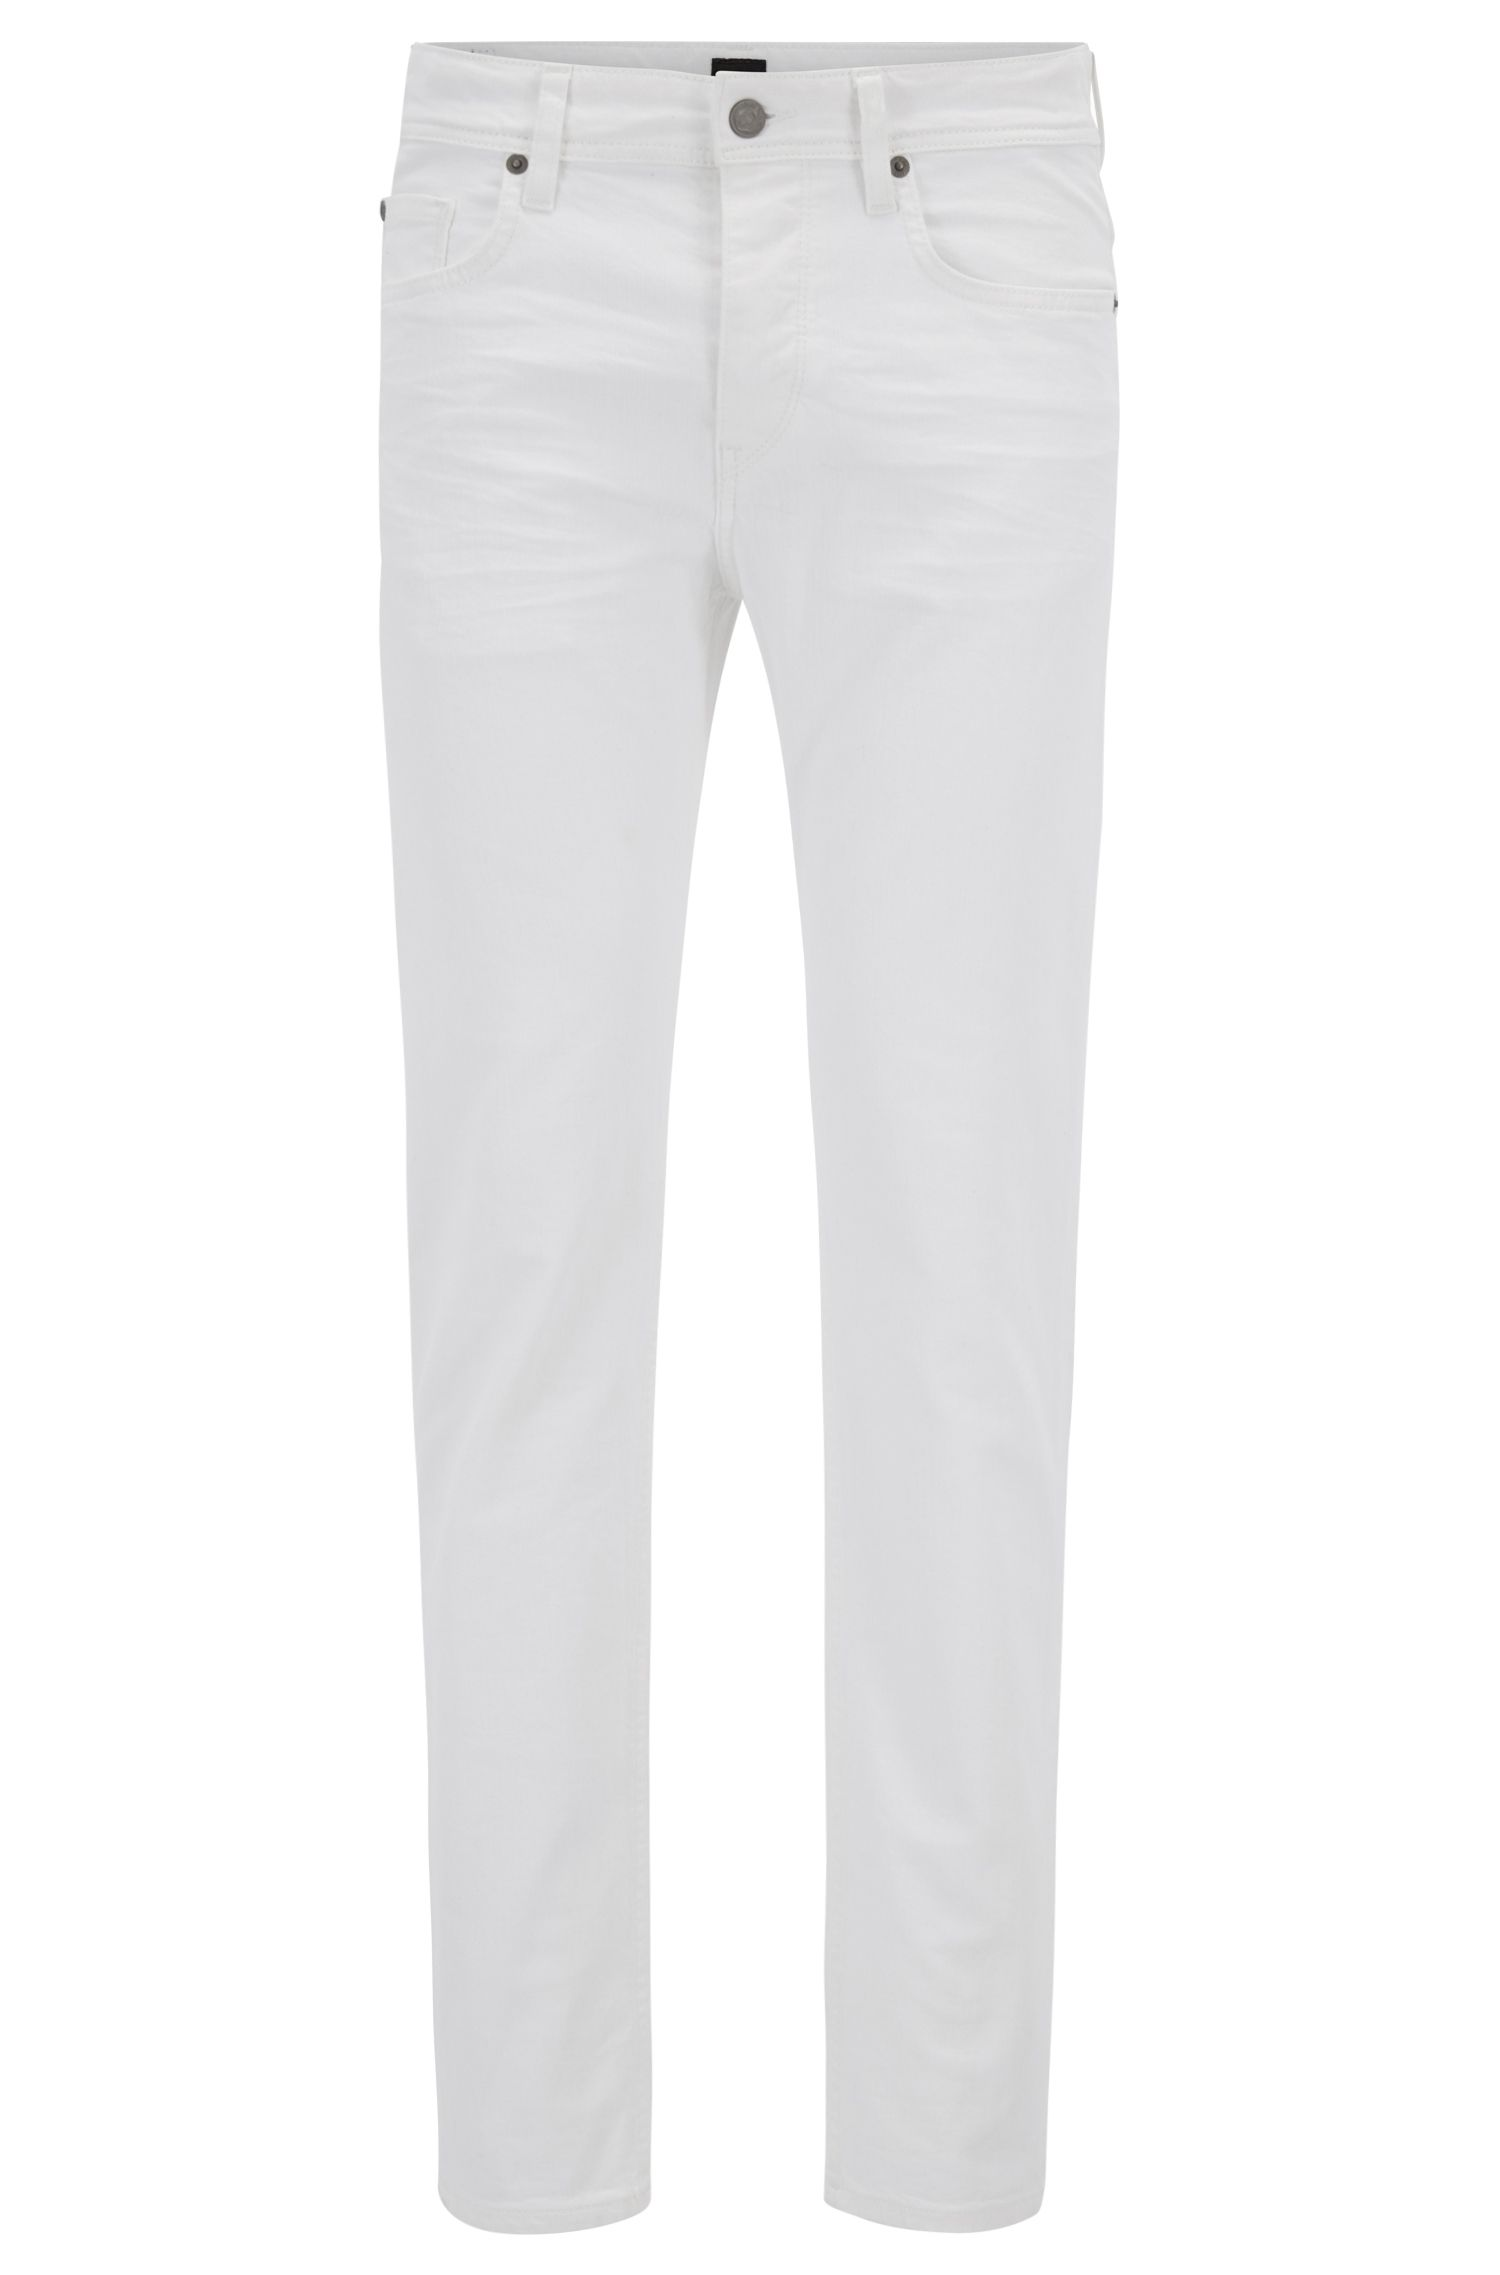 Off-white stretch-denim jeans in a tapered fit